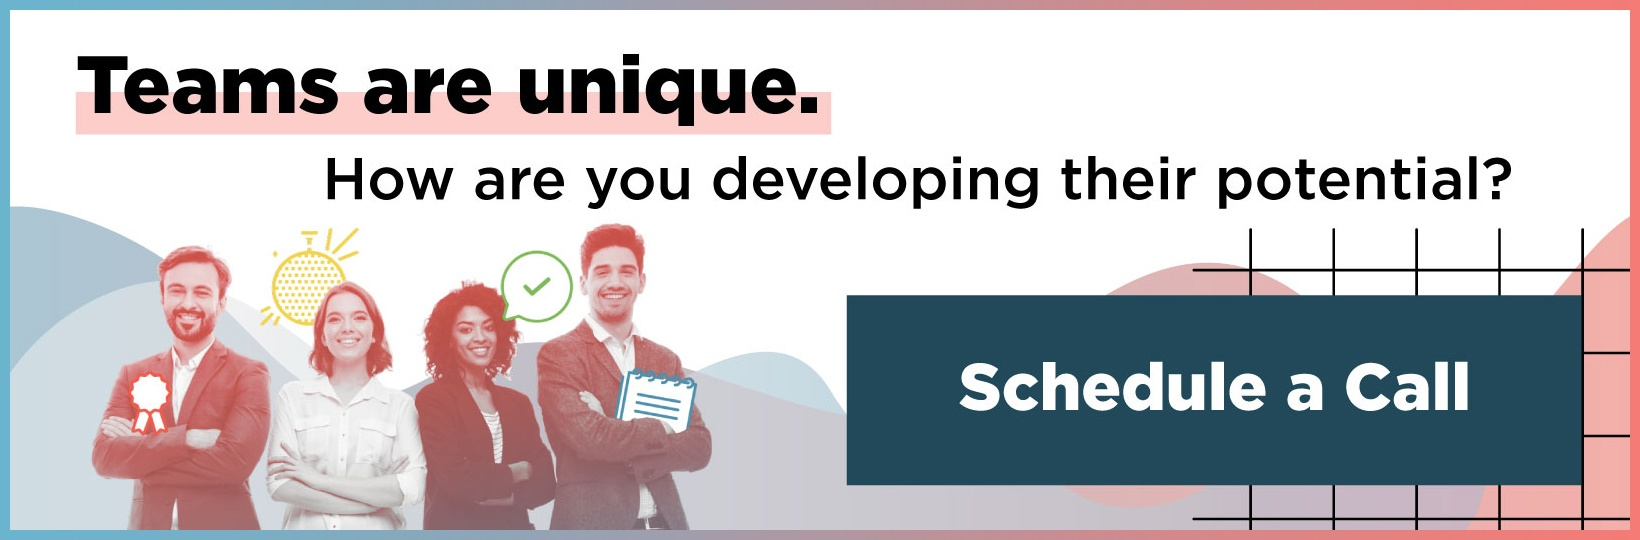 Teams are unique. How are you developing their potential? Schedule a call